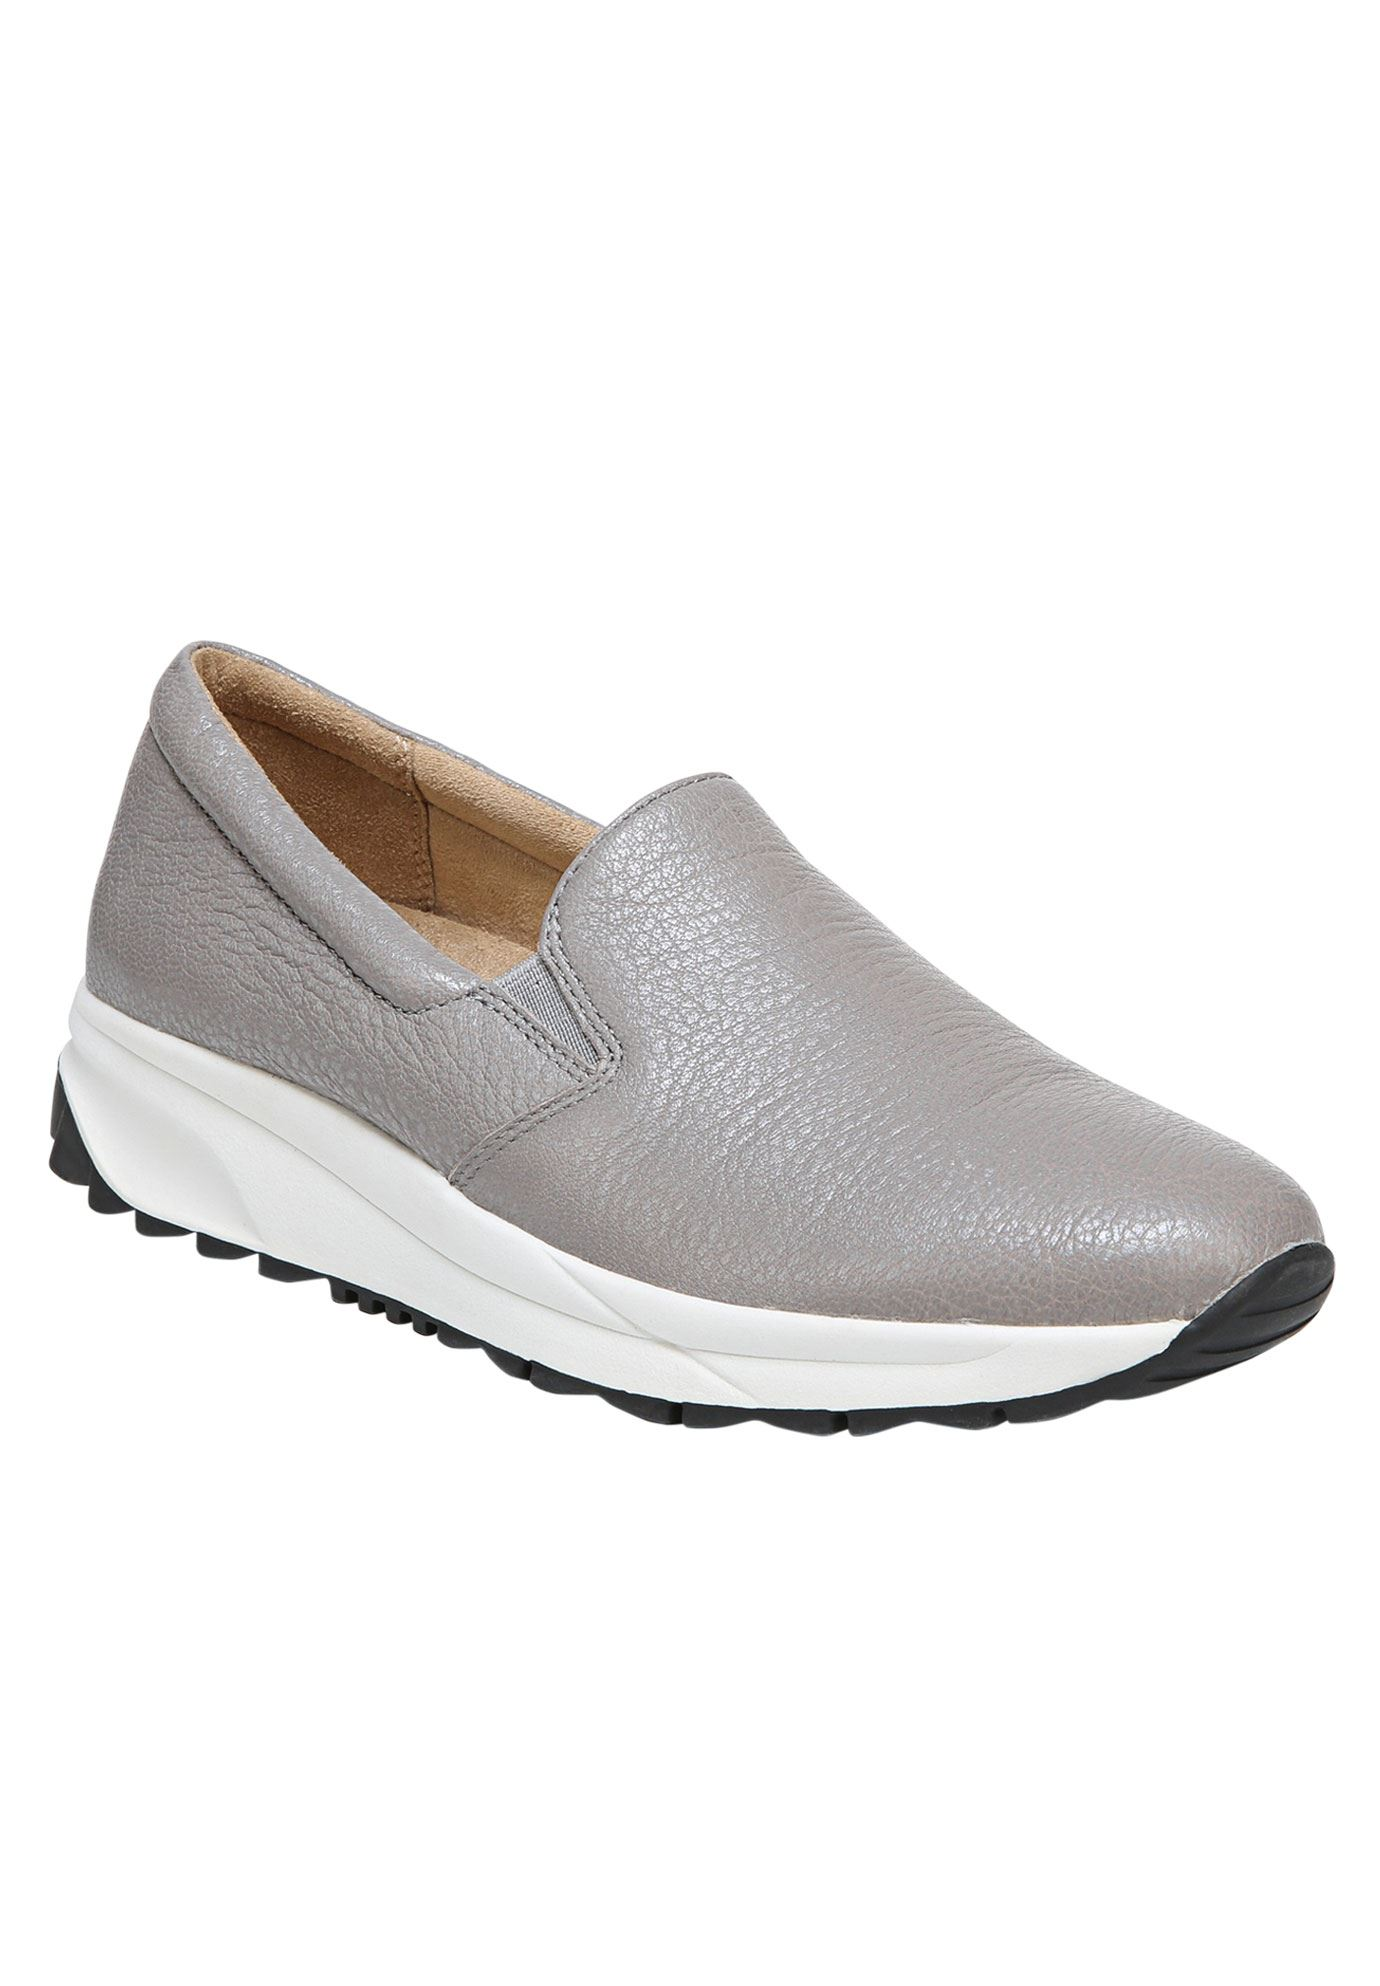 Selah Sneakers by Naturalizer®,